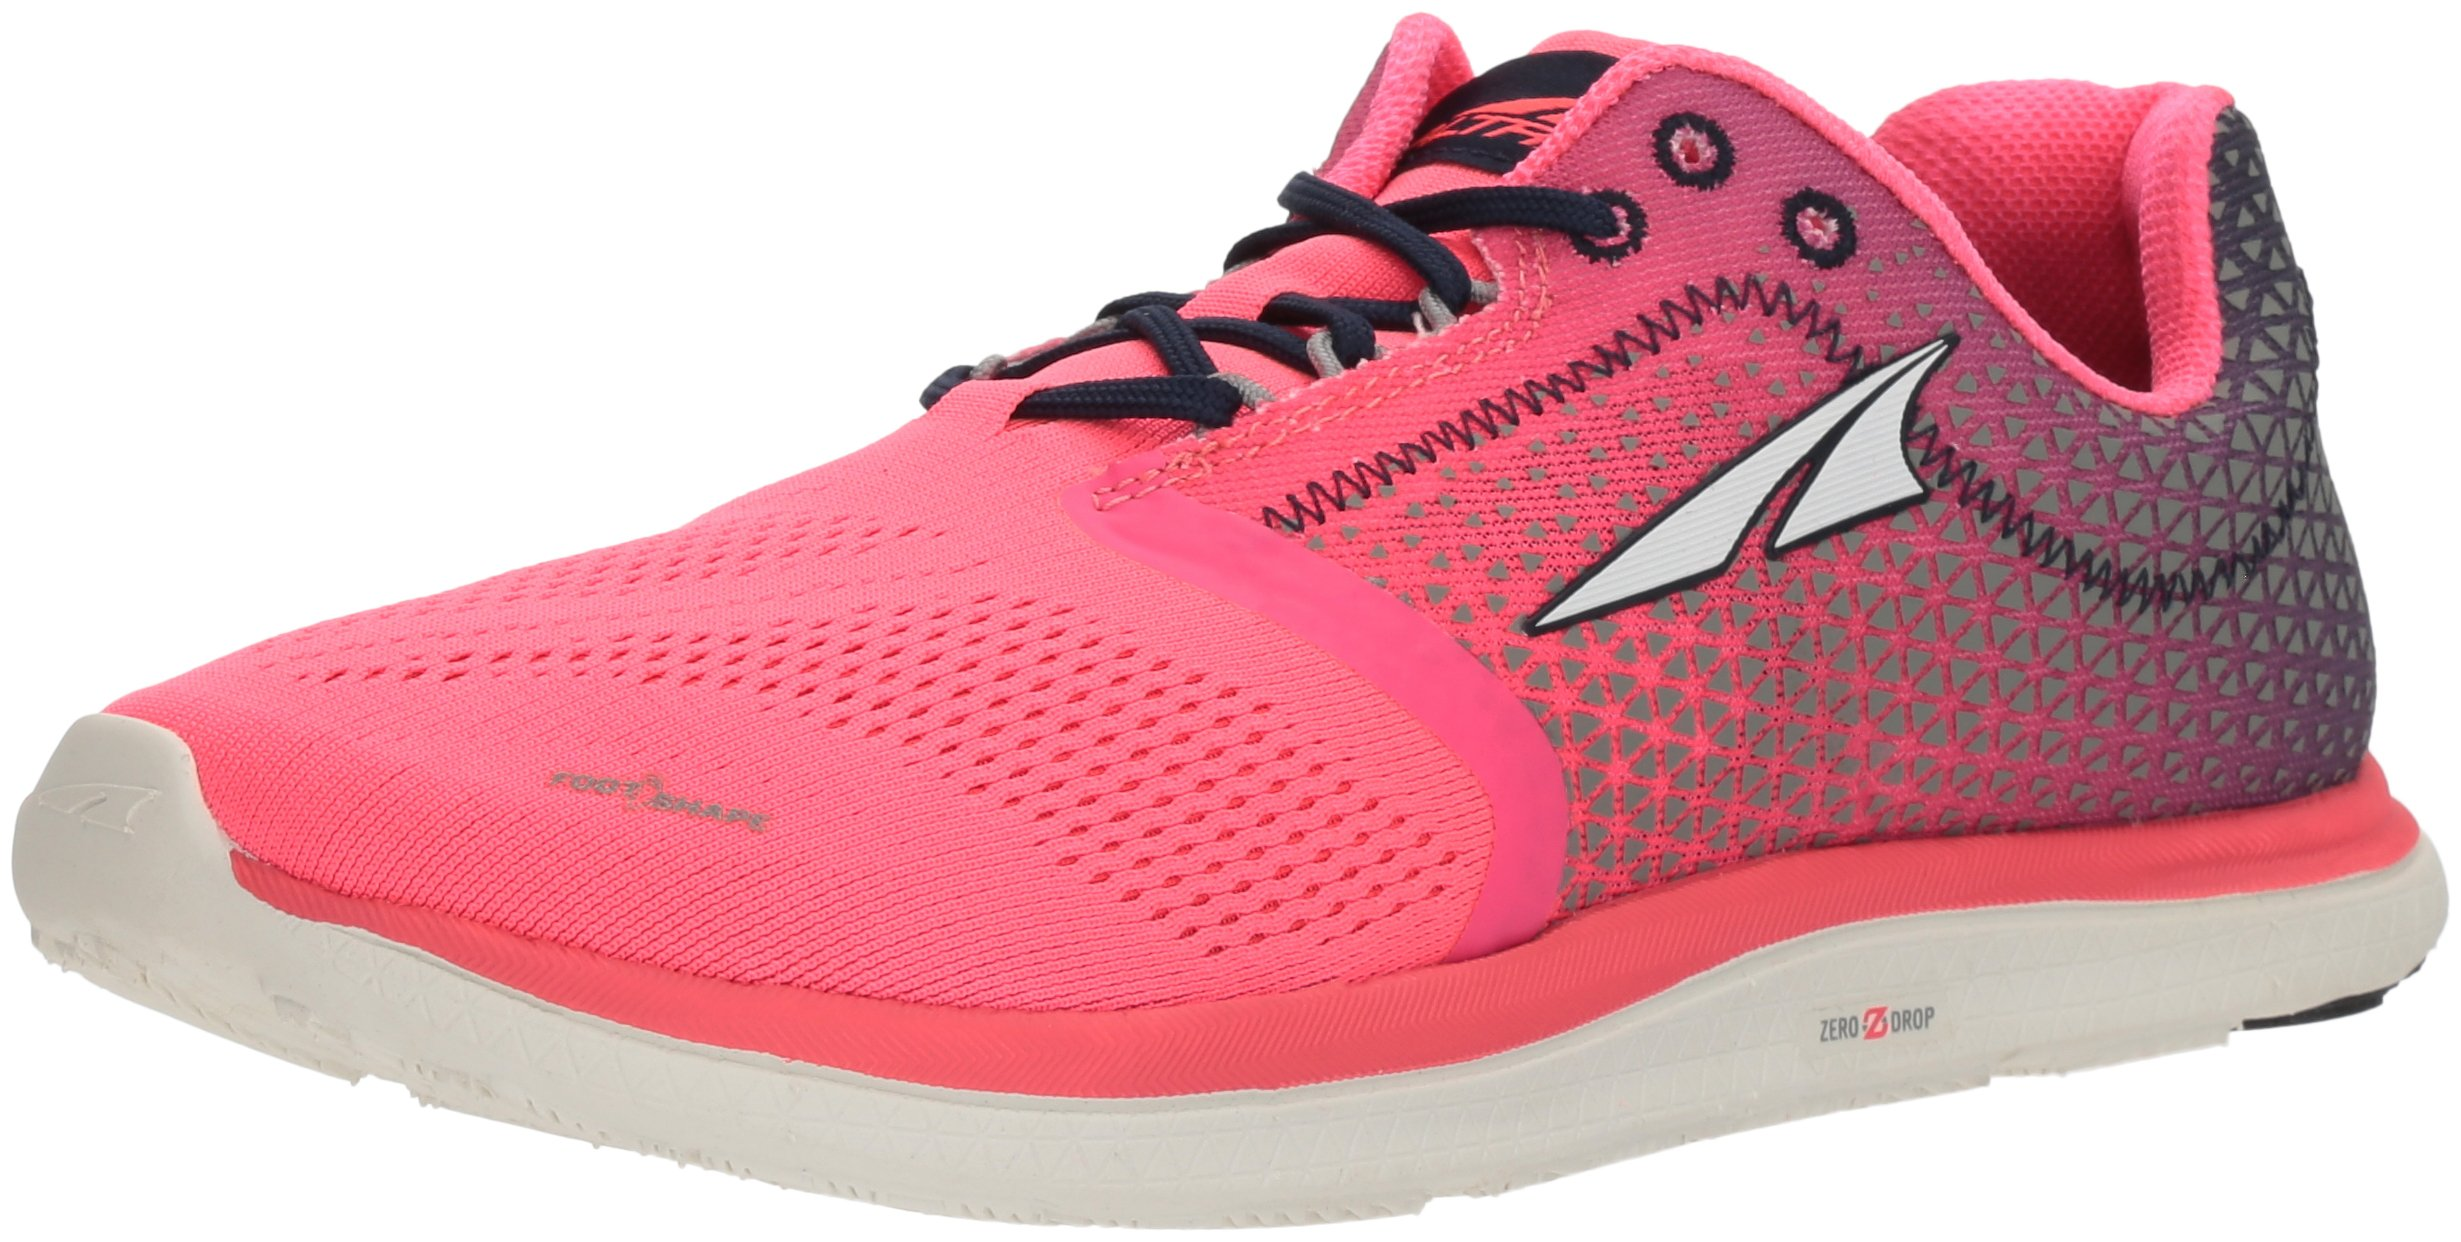 Altra Women's Solstice Sneaker Pink/Blue 5.5 Regular US by Altra (Image #1)